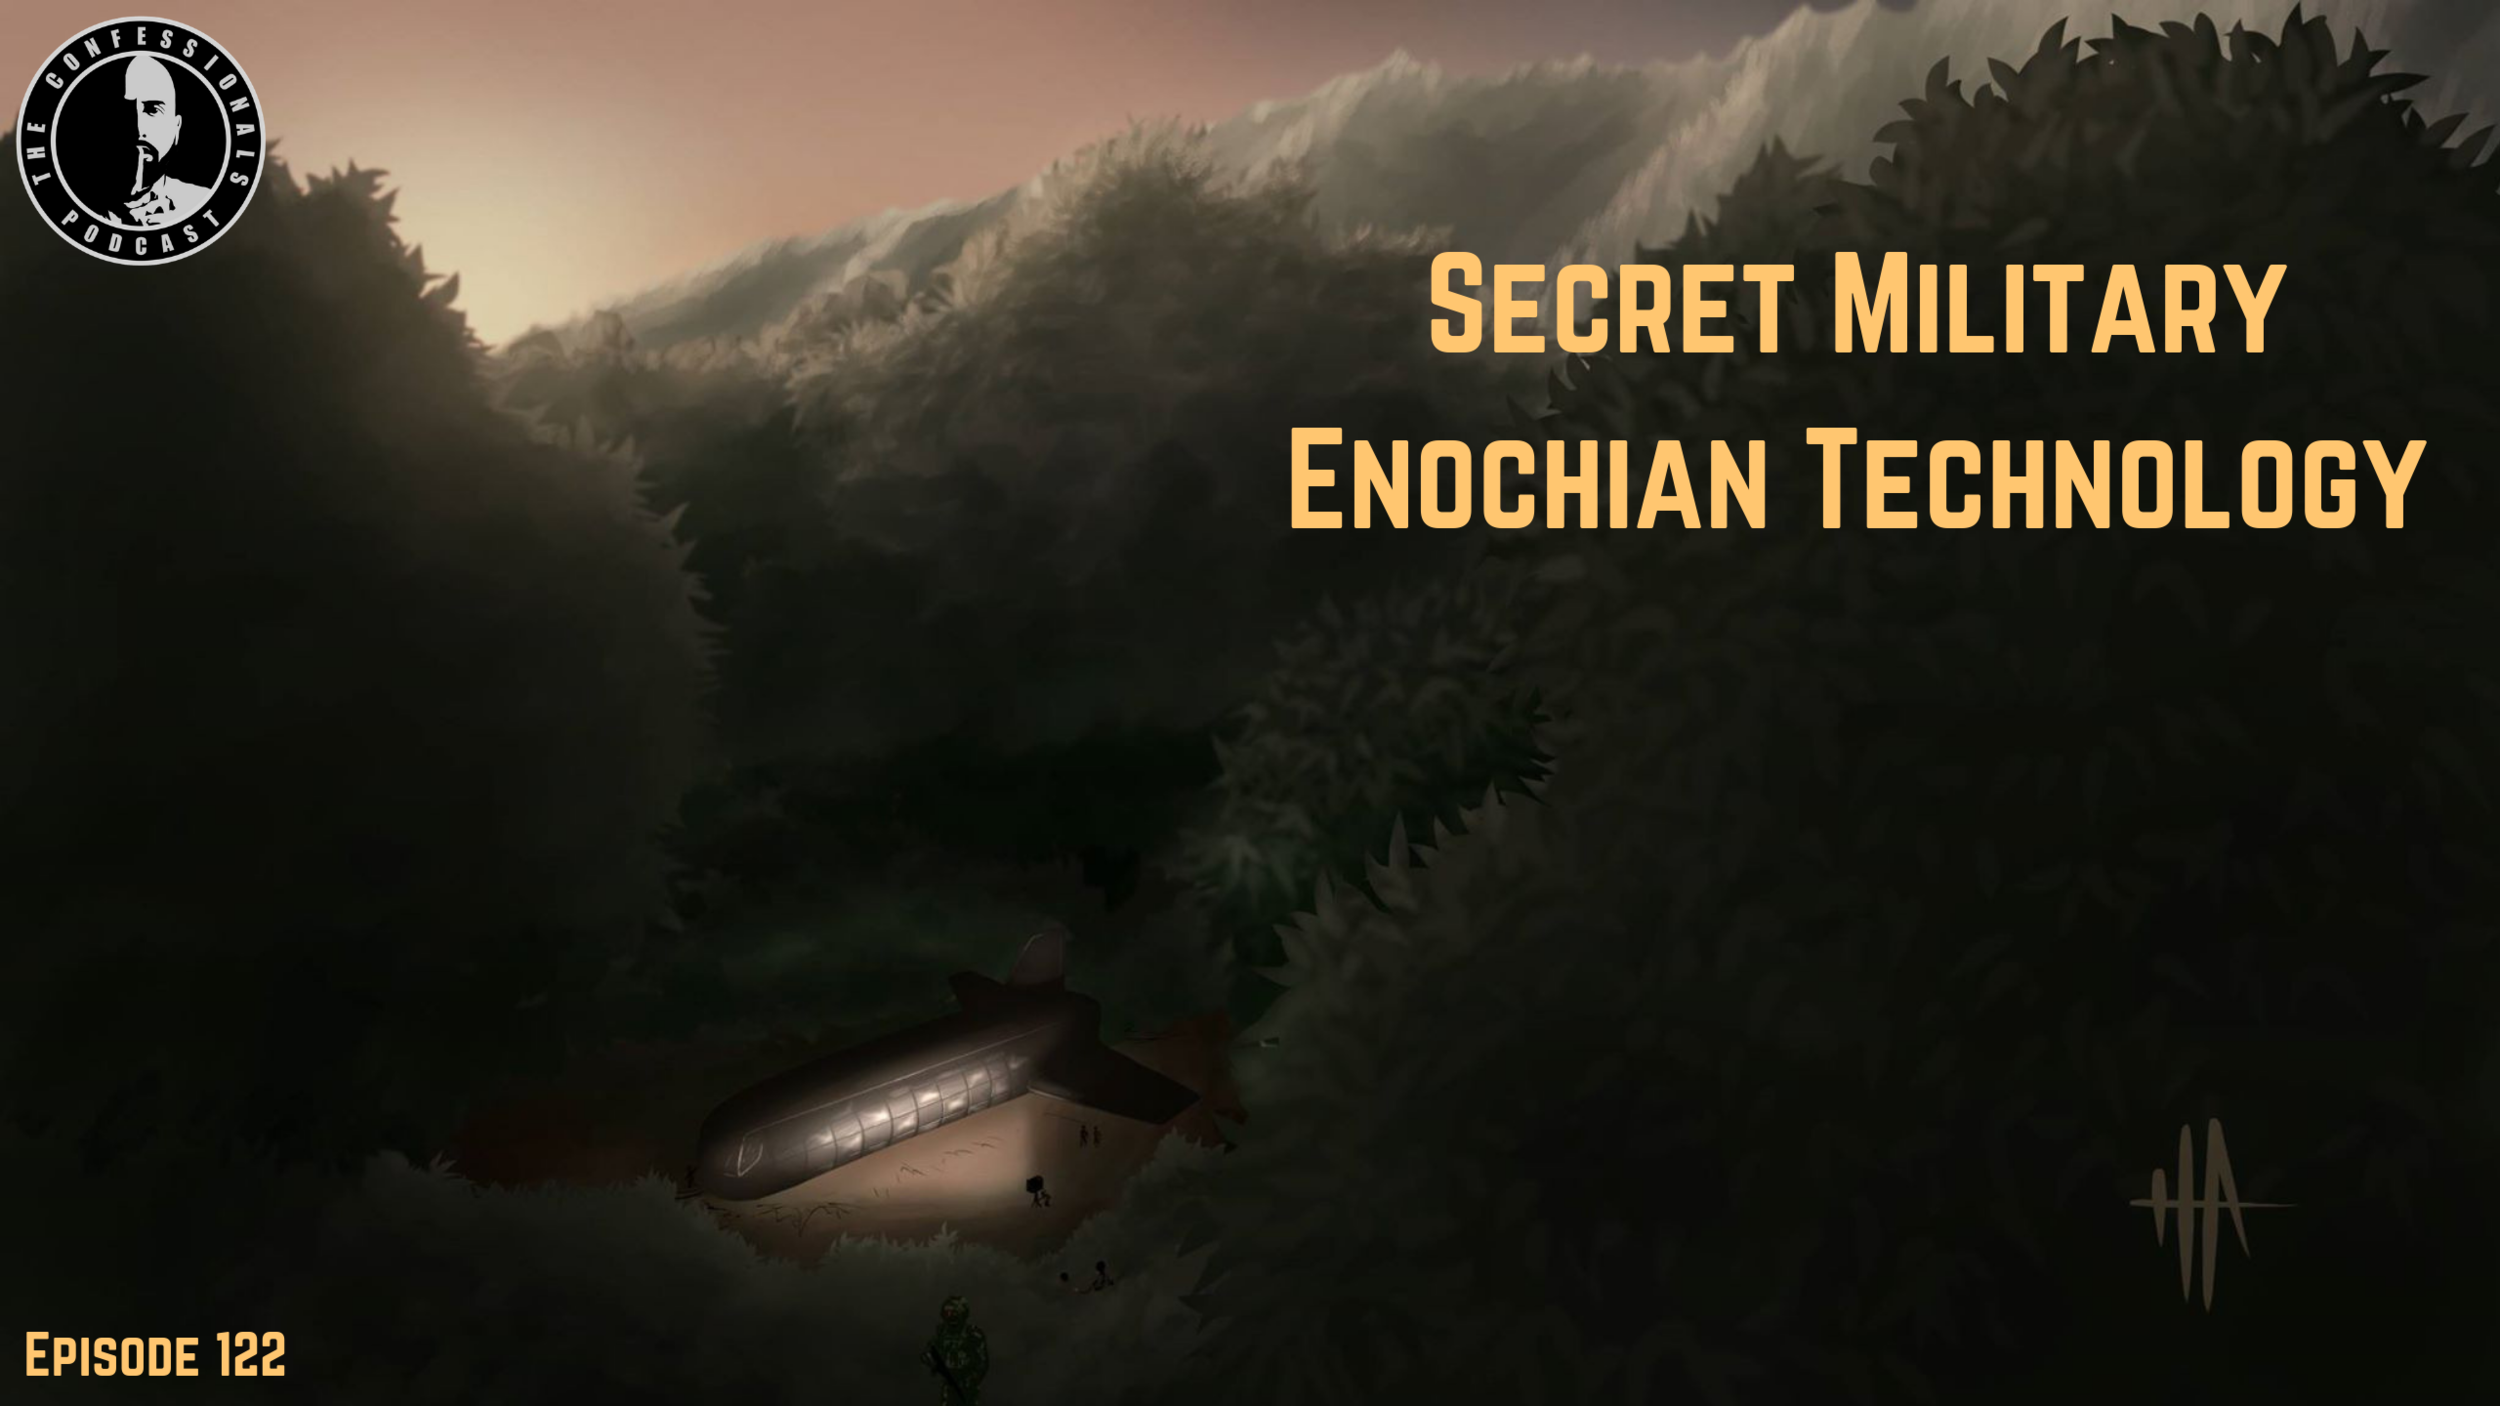 Secret Military Enochian Technology (1).png